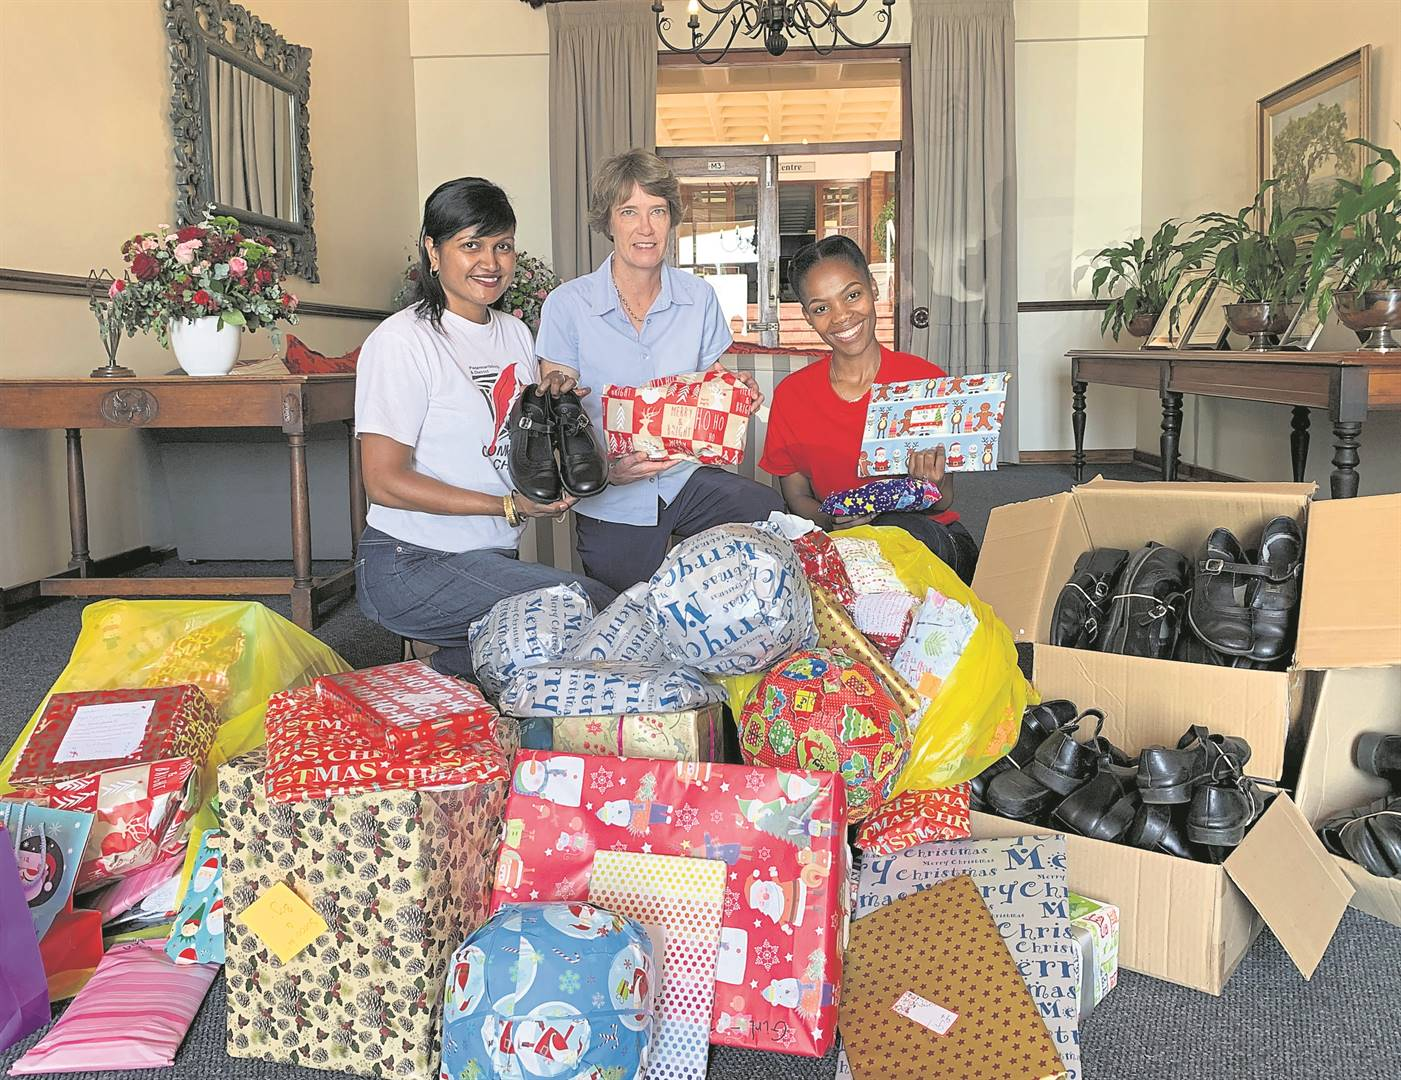 The Wykeham Collegiate girls donated gifts and school shoes to the Community Chest. Angie Narayanan and Lindokuhle Ngubane from Community Chest collected them from the Lady principal, Sue Tasker, to distribute to the less fortunate.PHOTO: supplied